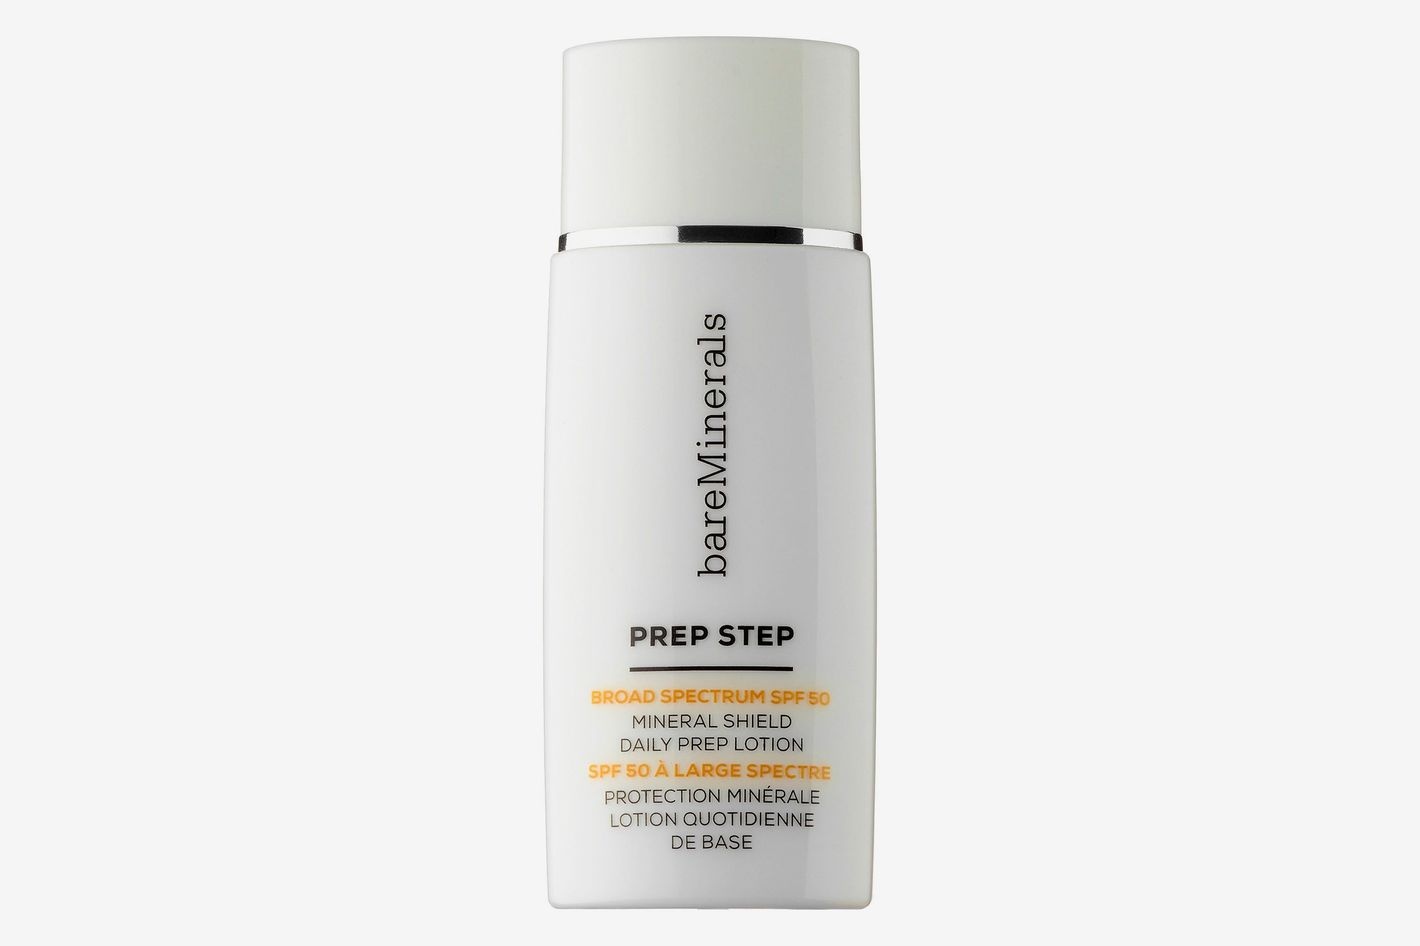 BareMinerals Prep Step Mineral Shield SPF 50